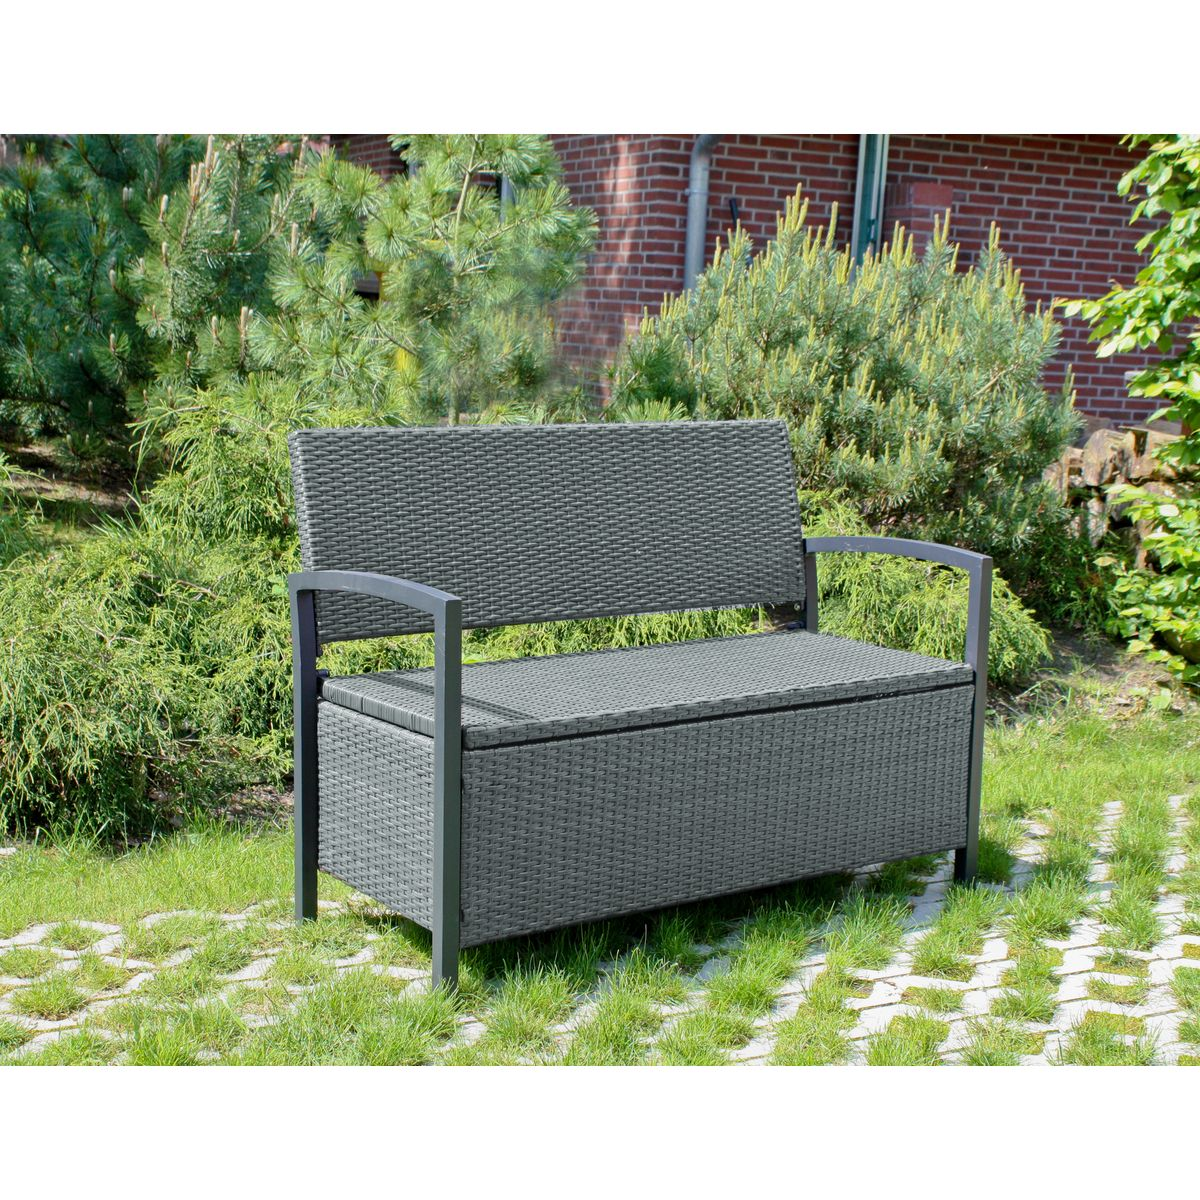 gartenbank mit truhe truhenbank bank parkbank auflagenbox. Black Bedroom Furniture Sets. Home Design Ideas